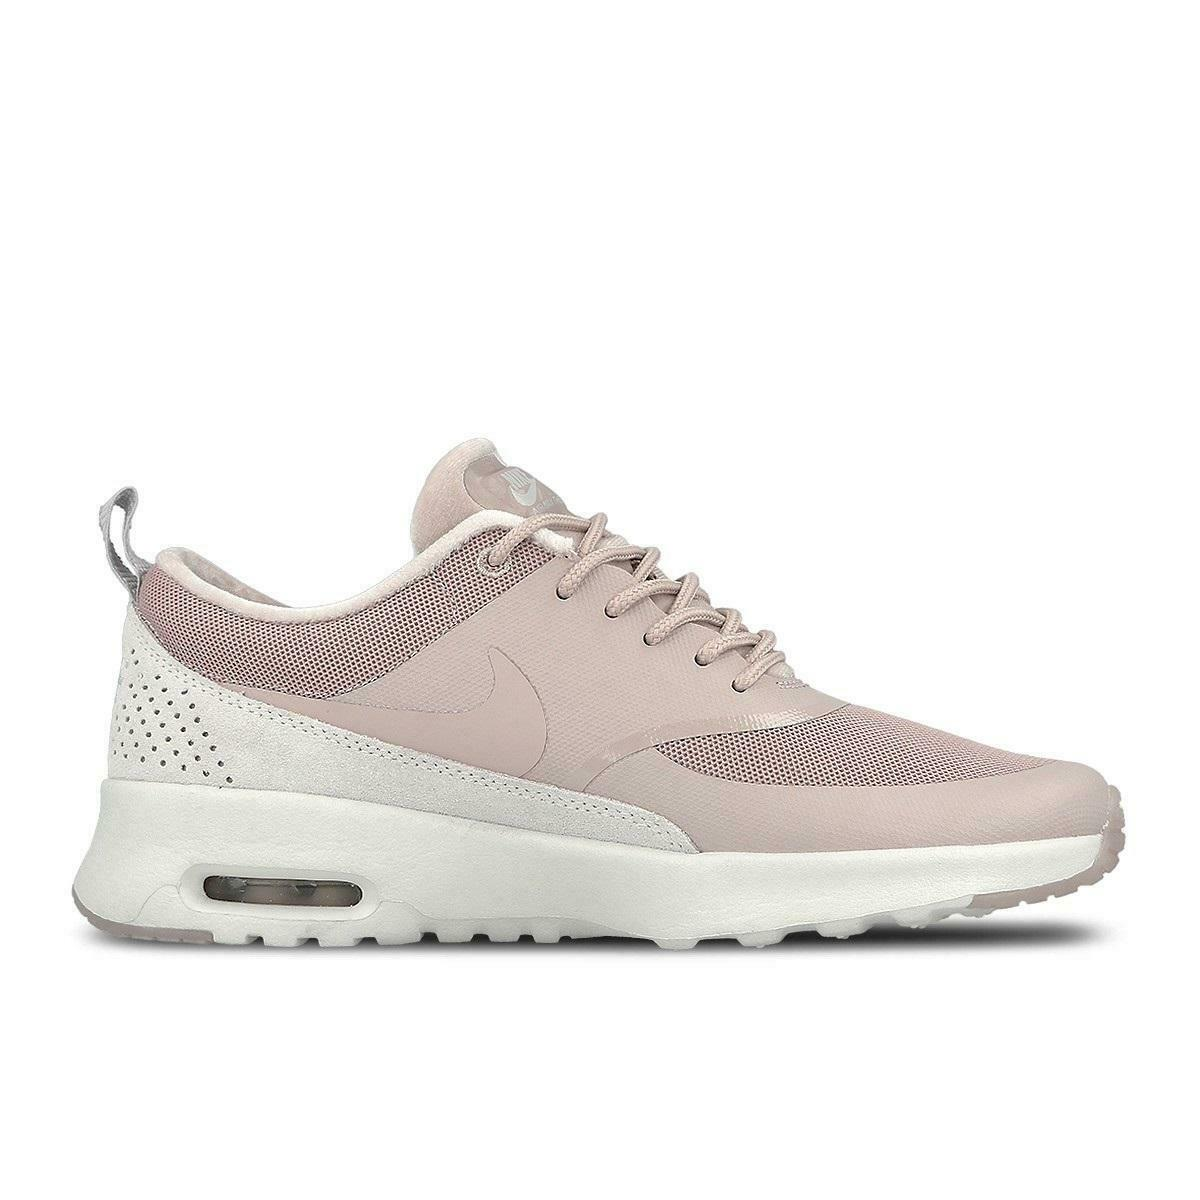 Womens NIKE AIR MAX THEA LX Rose Trainers 881203 600